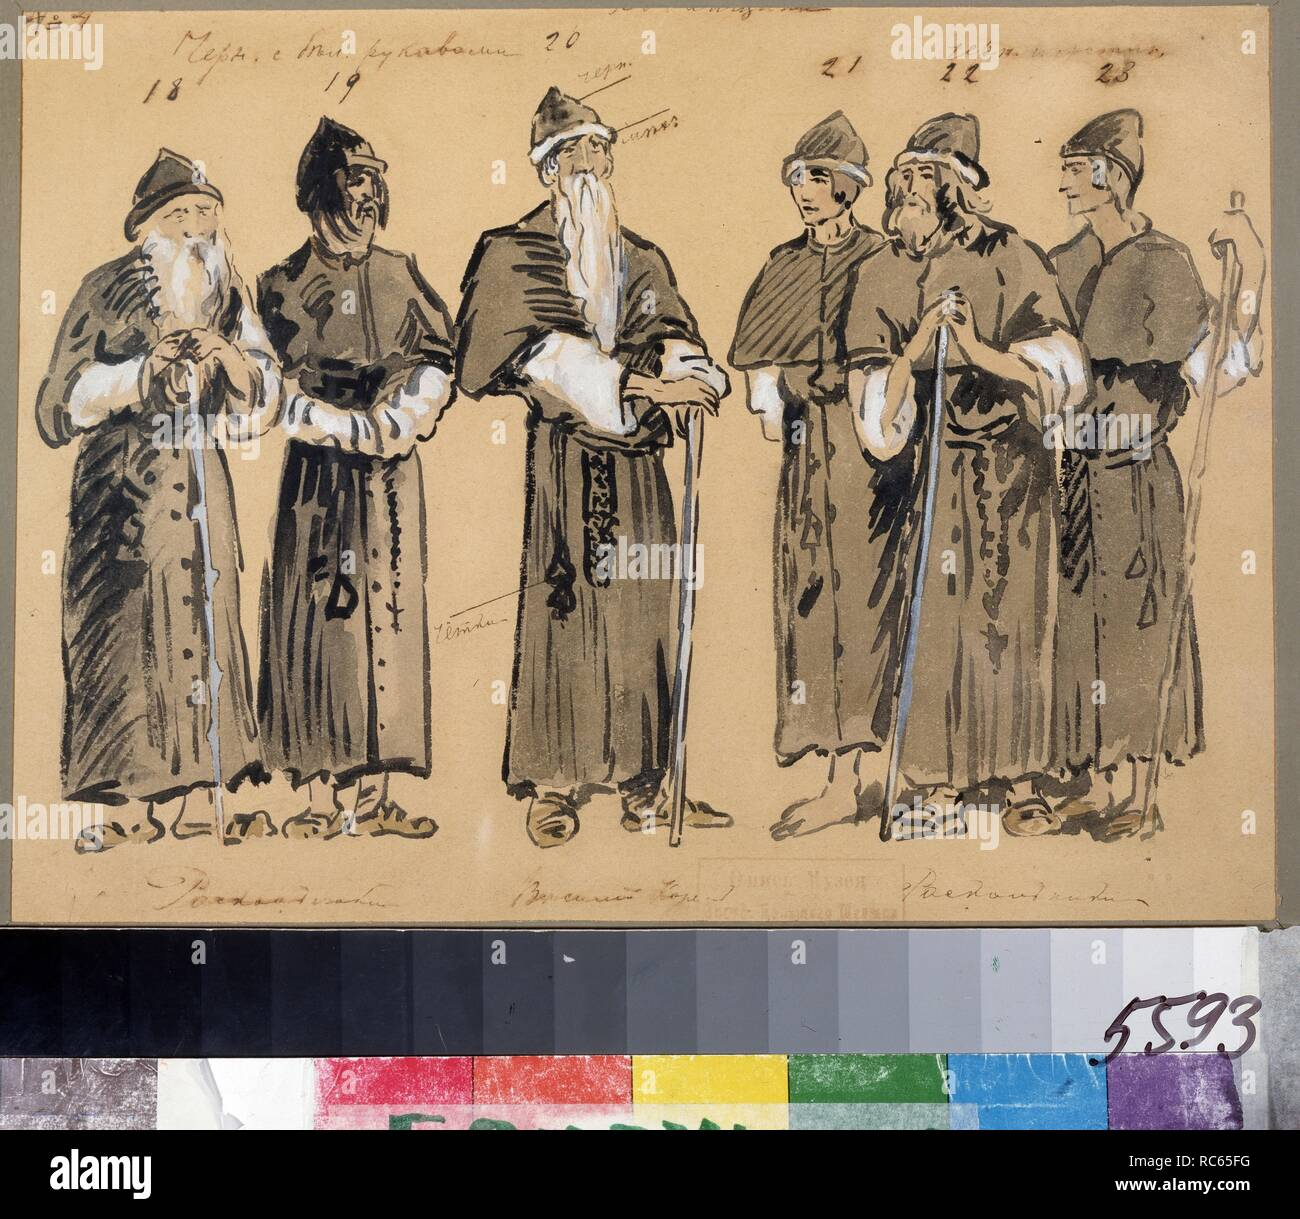 Costume Design For The Opera Khovanshchina By M Mussorgsky Museum State Central A Bakhrushin Theatre Museum Moscow Author Korovin Konstantin Alexeyevich Stock Photo 231246724 Alamy